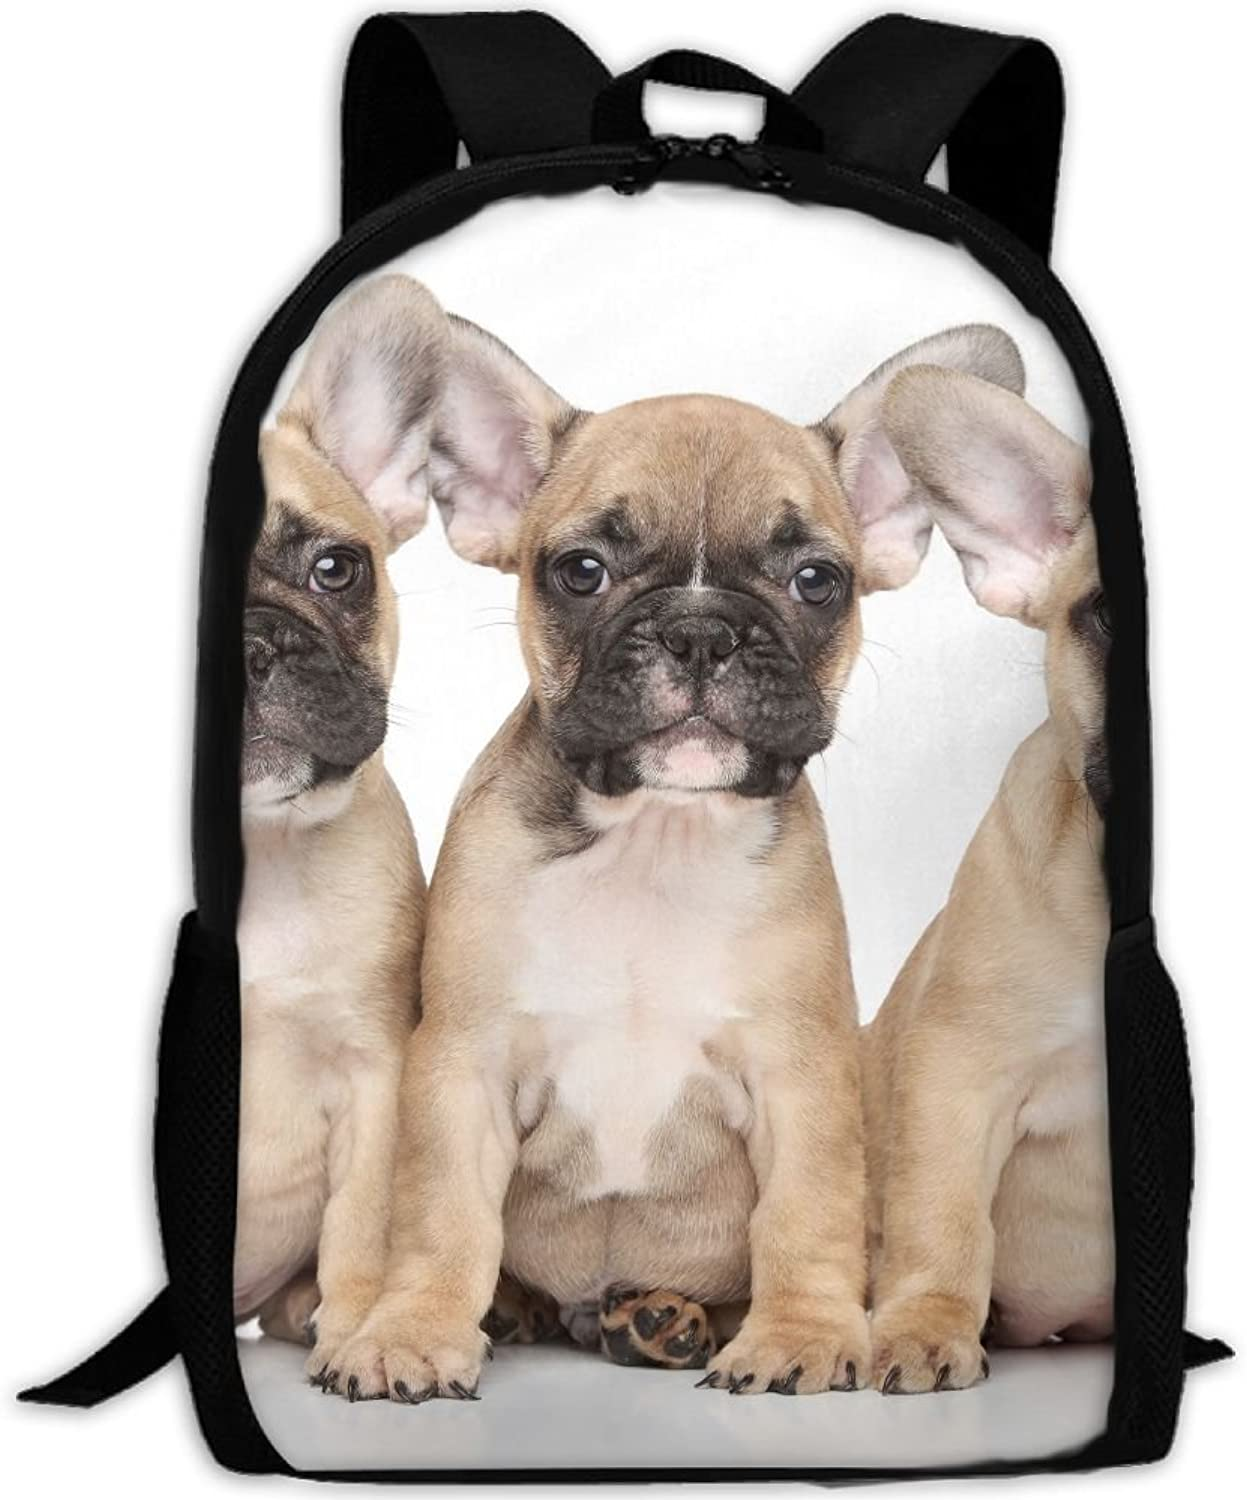 Backpack Laptop Travel Hiking School Bags French Bulldog Puppies Daypack Shoulder Bag